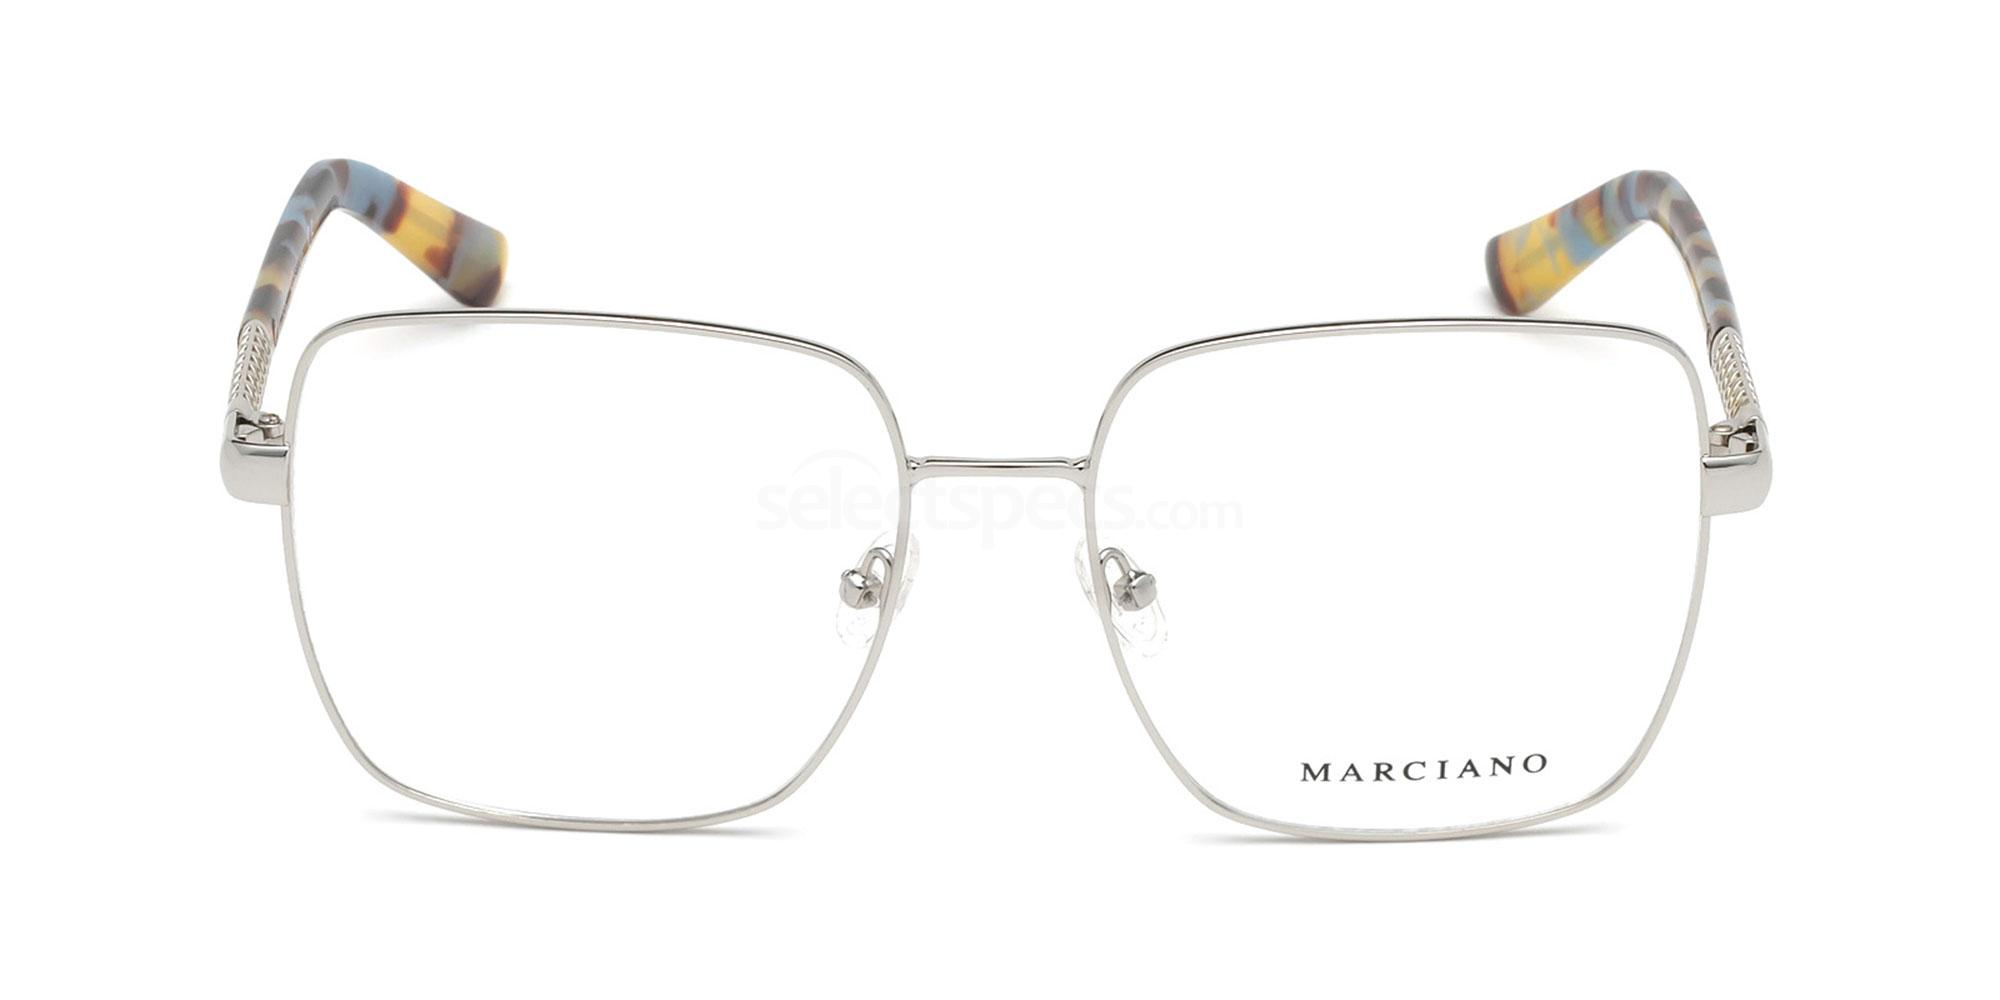 010 GM0359 Glasses, Guess by Marciano